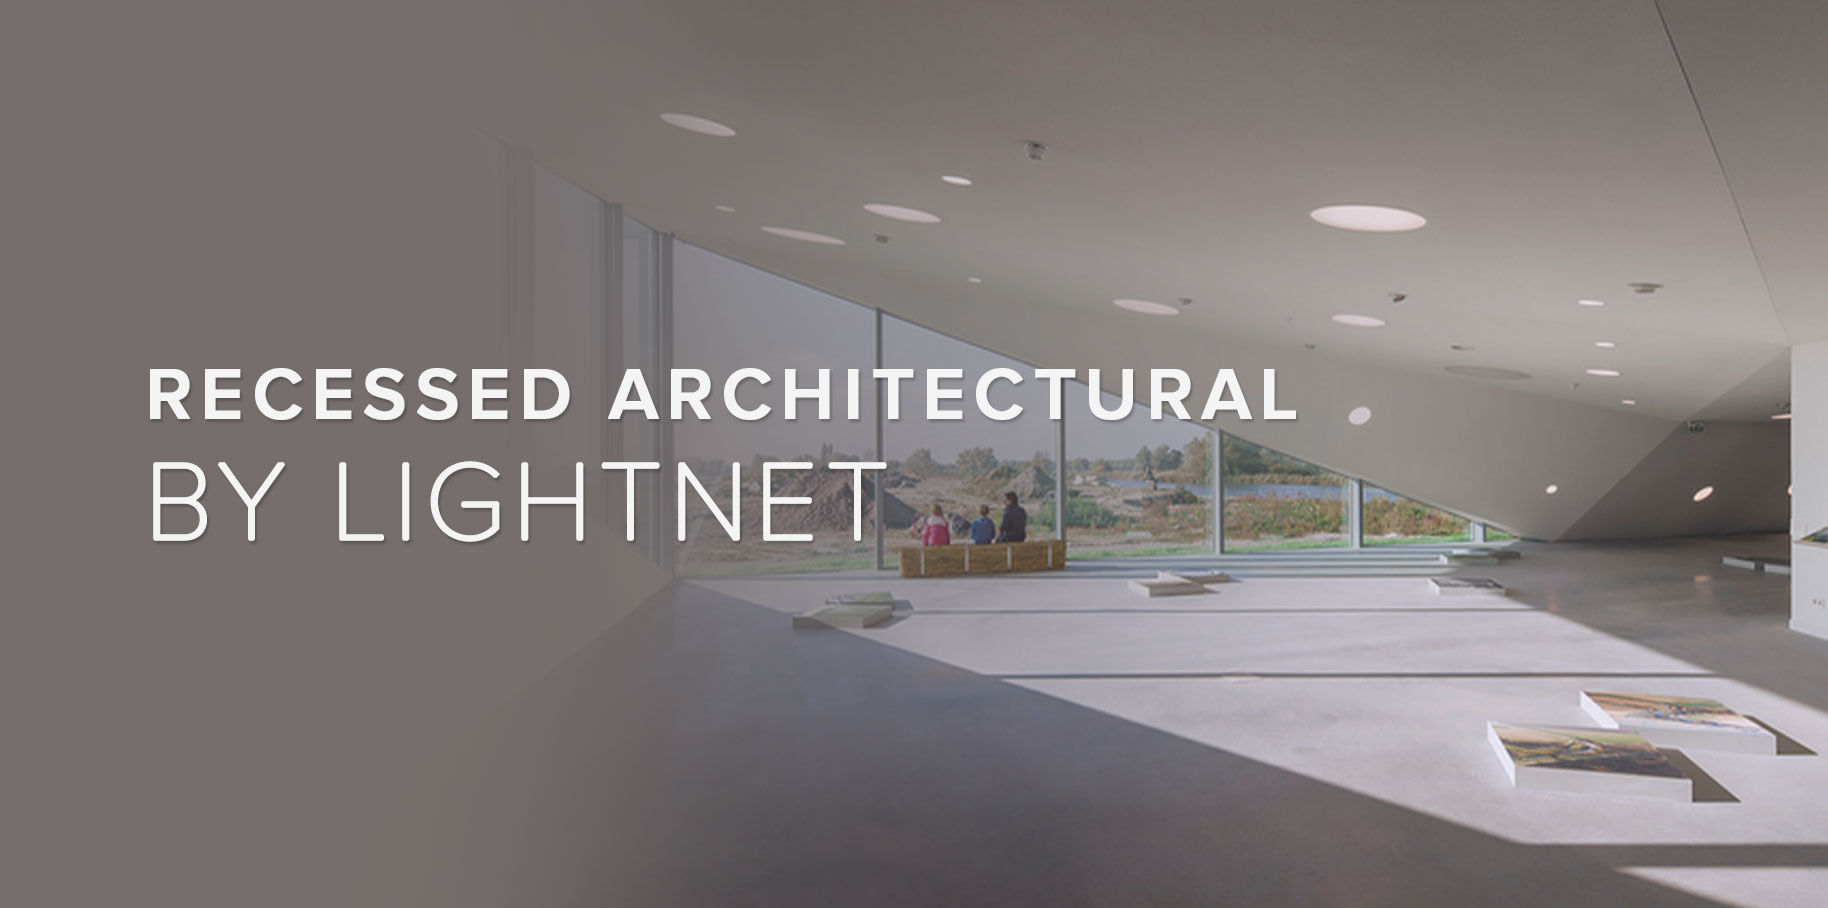 Recessed Architectural by Lightnet